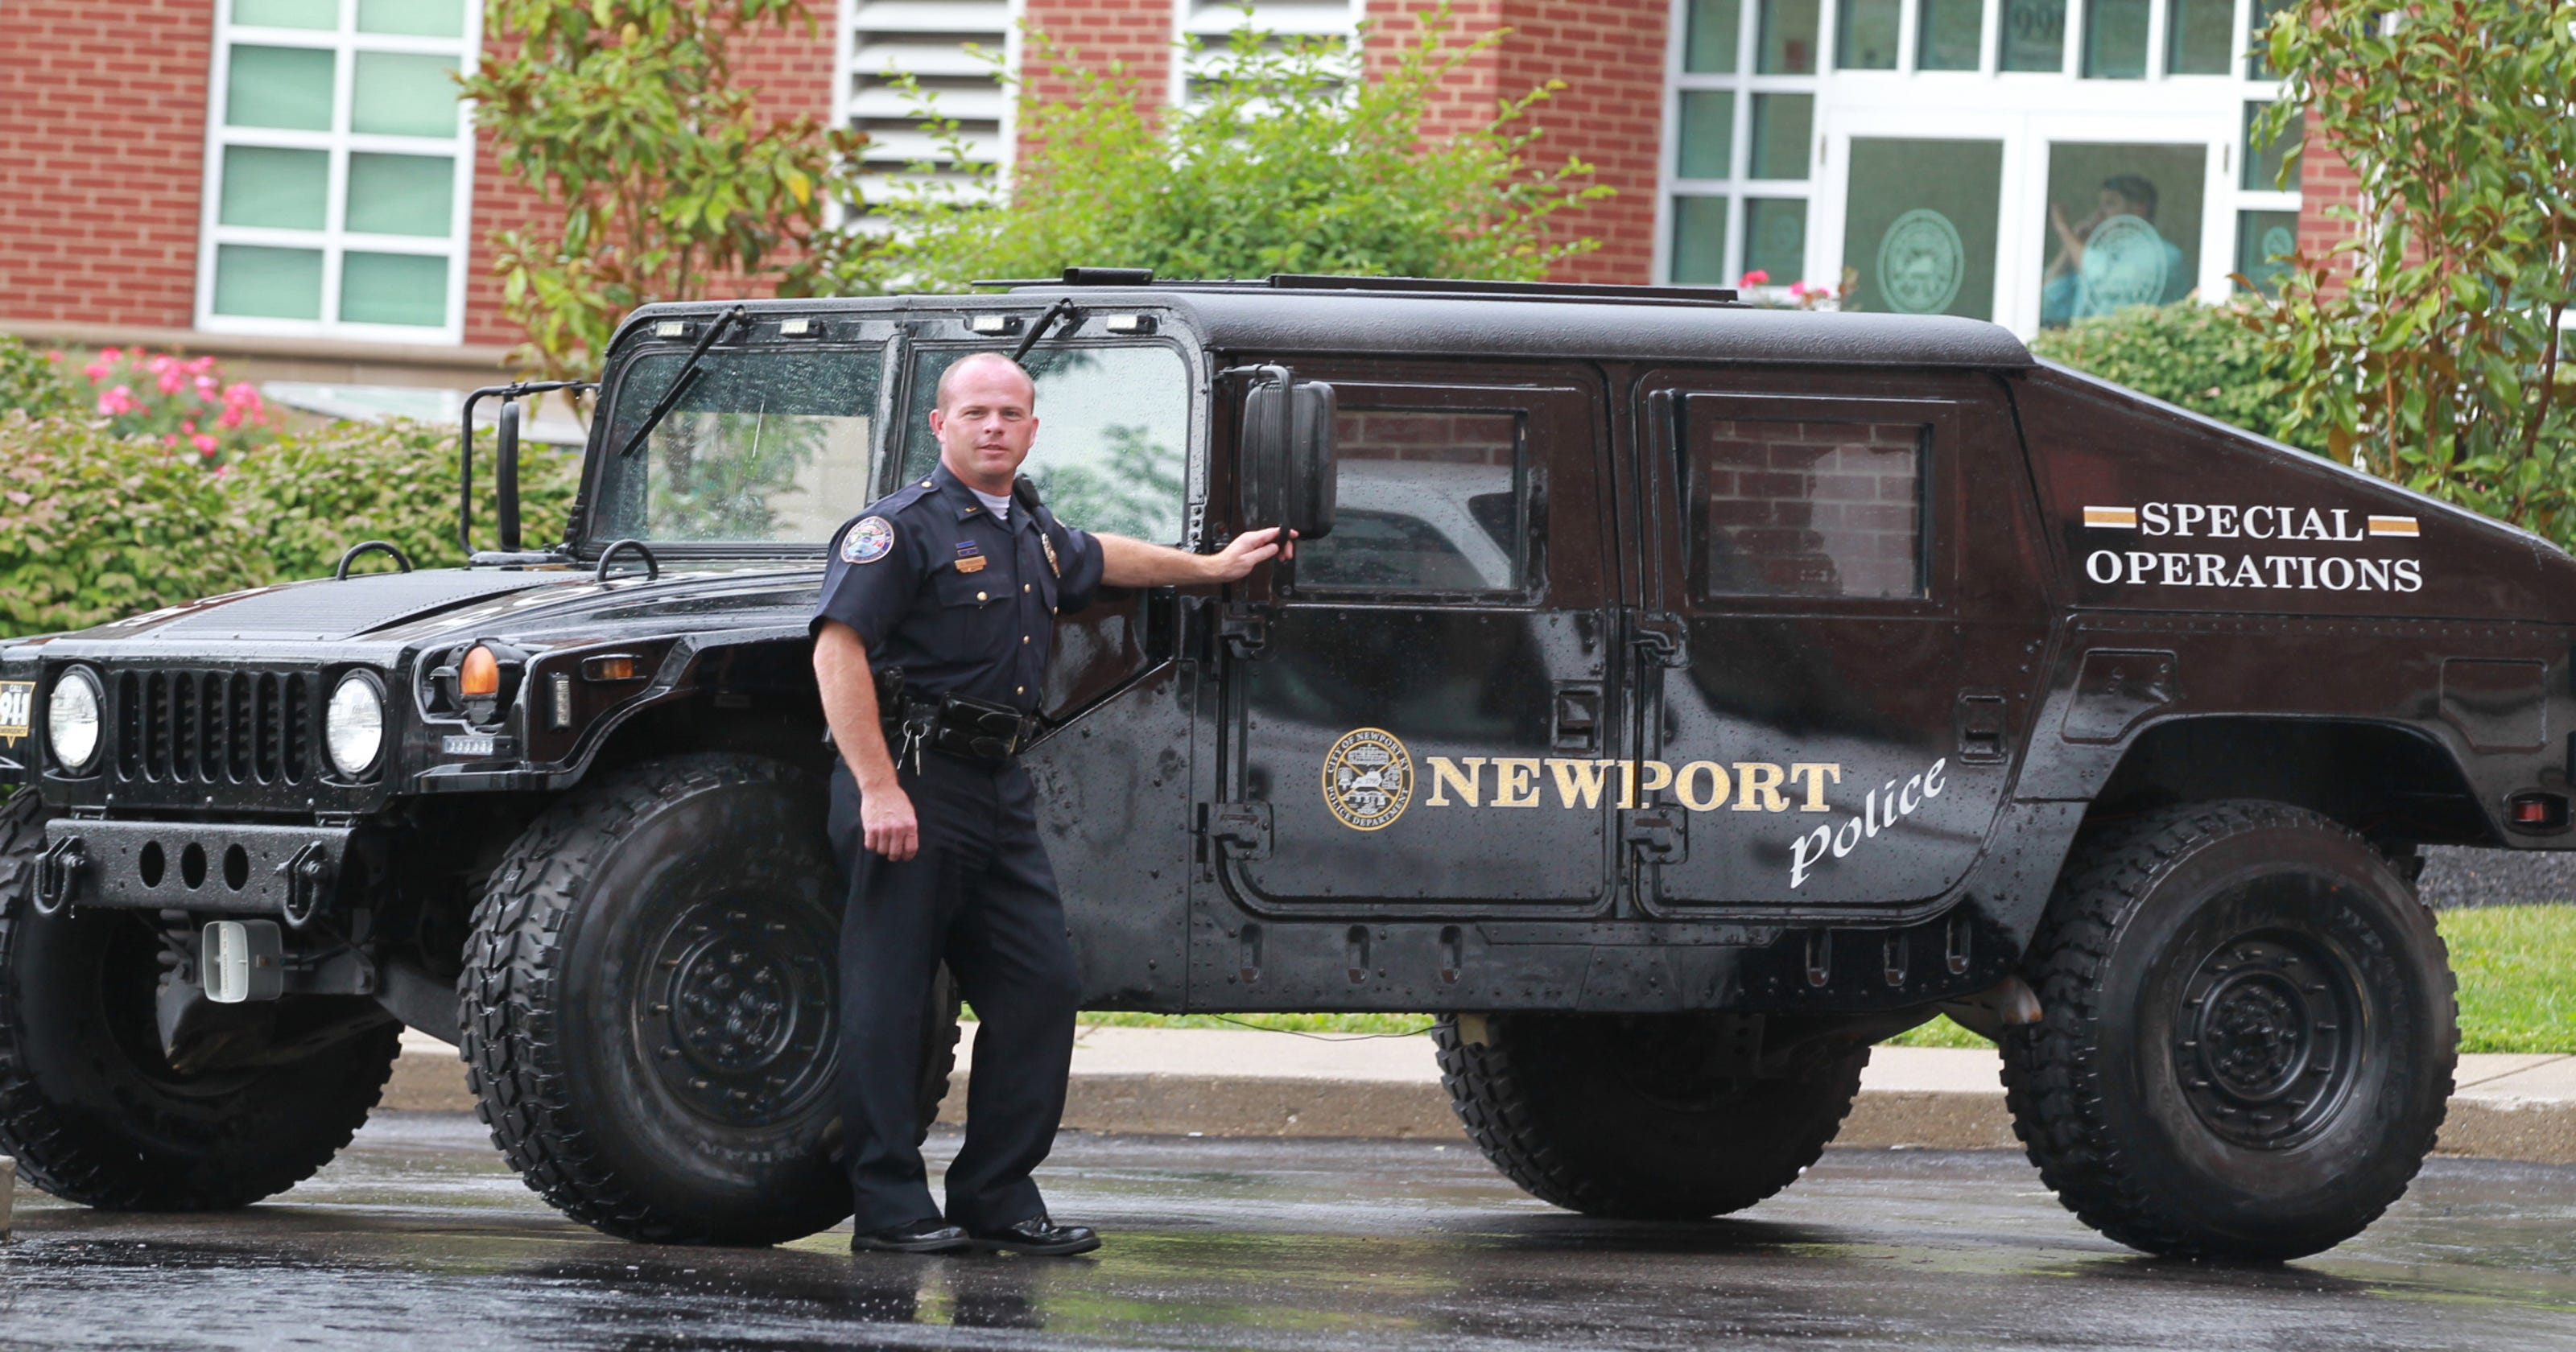 Do local police departments need military equipment?